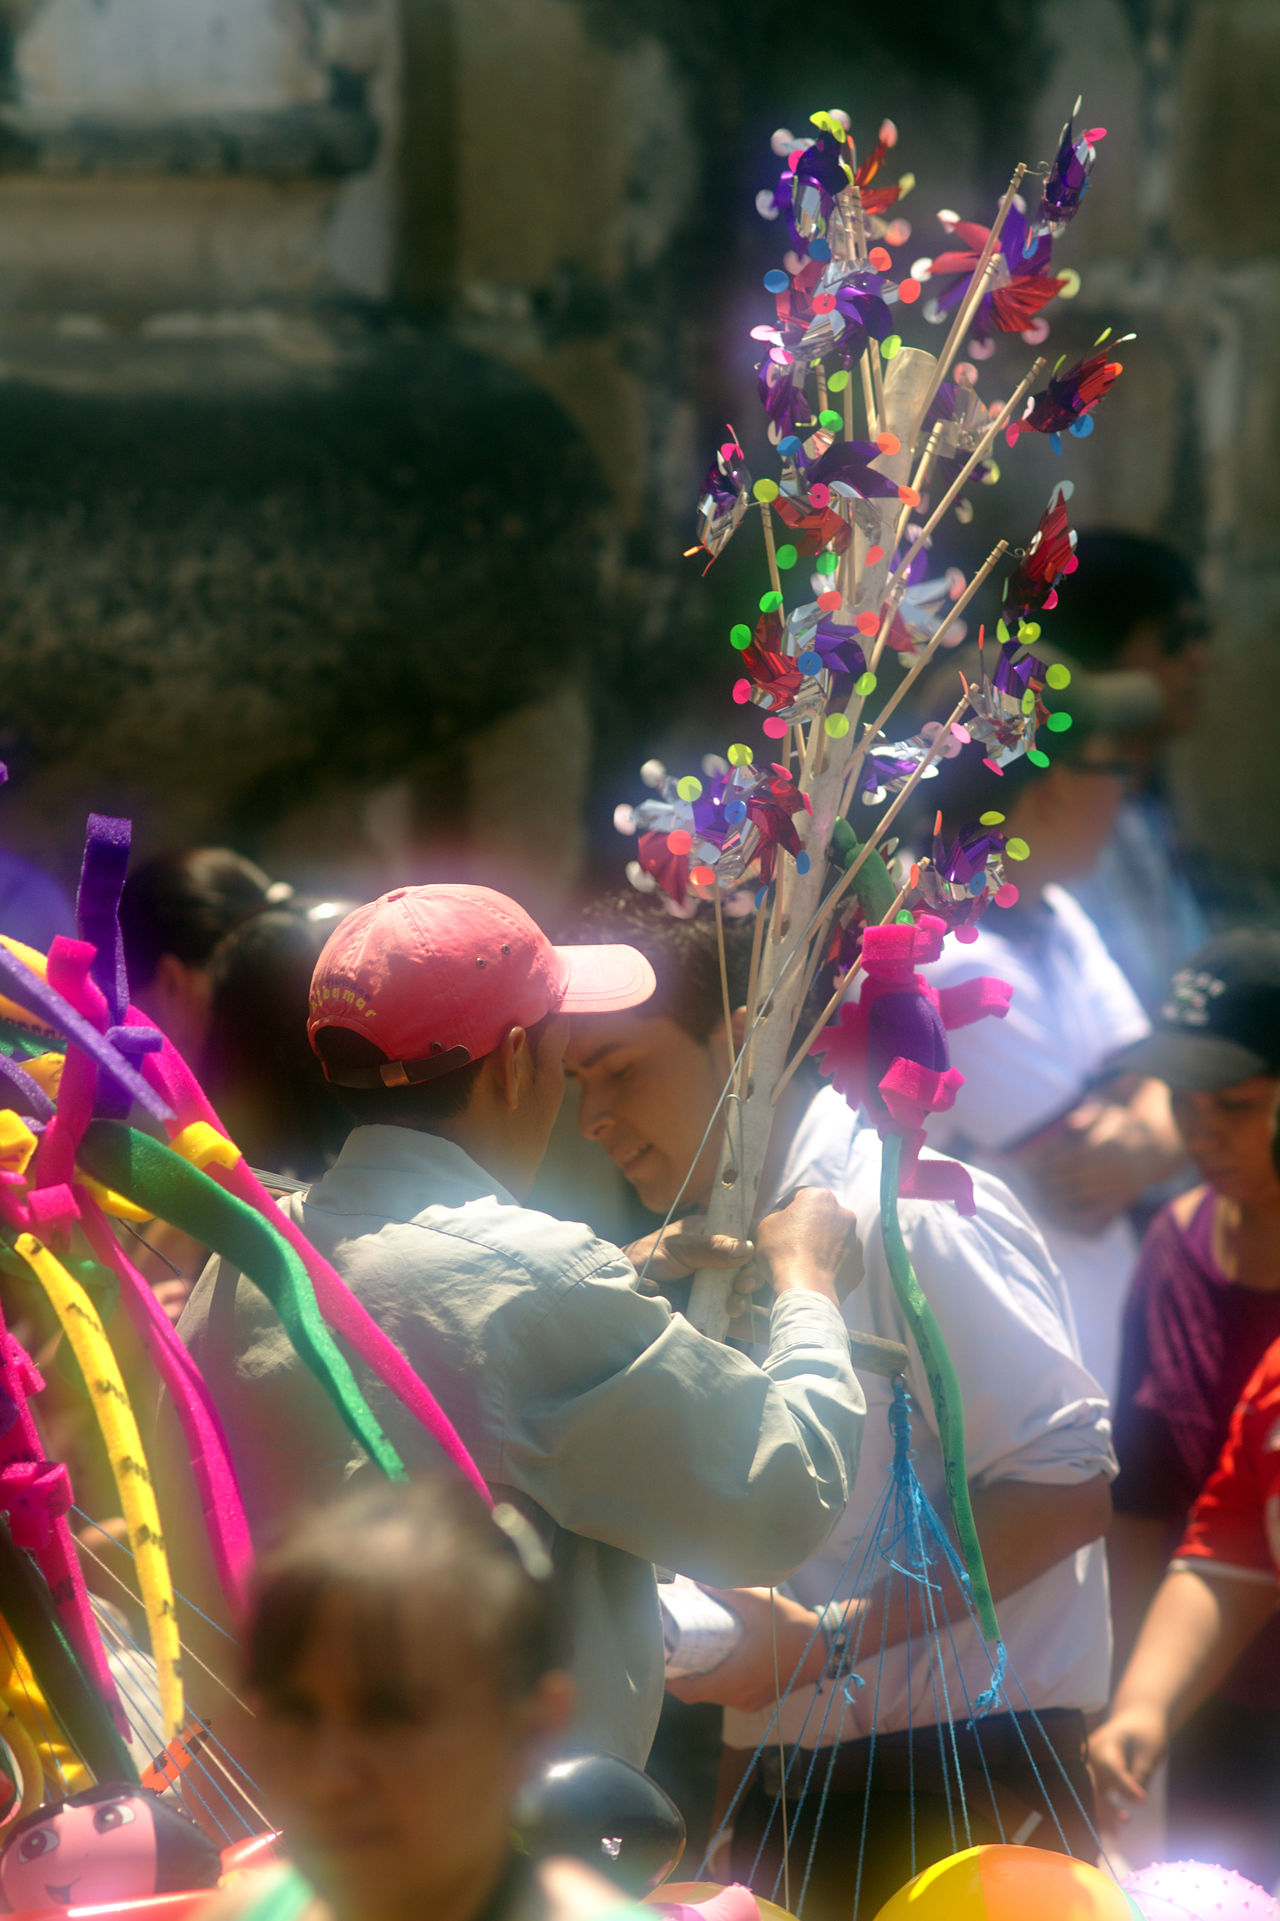 Adult Baseball Cap Celebration Colorful Gifts Crowd Day Fine Art Photography Flea Markets Market Outdoors People Red Hat Sales Person Still Life Street Photography Street Sales Tradition Travel Travel Destinations Traveling Salesman Urban Exploration Urban Photography Western Guatemala